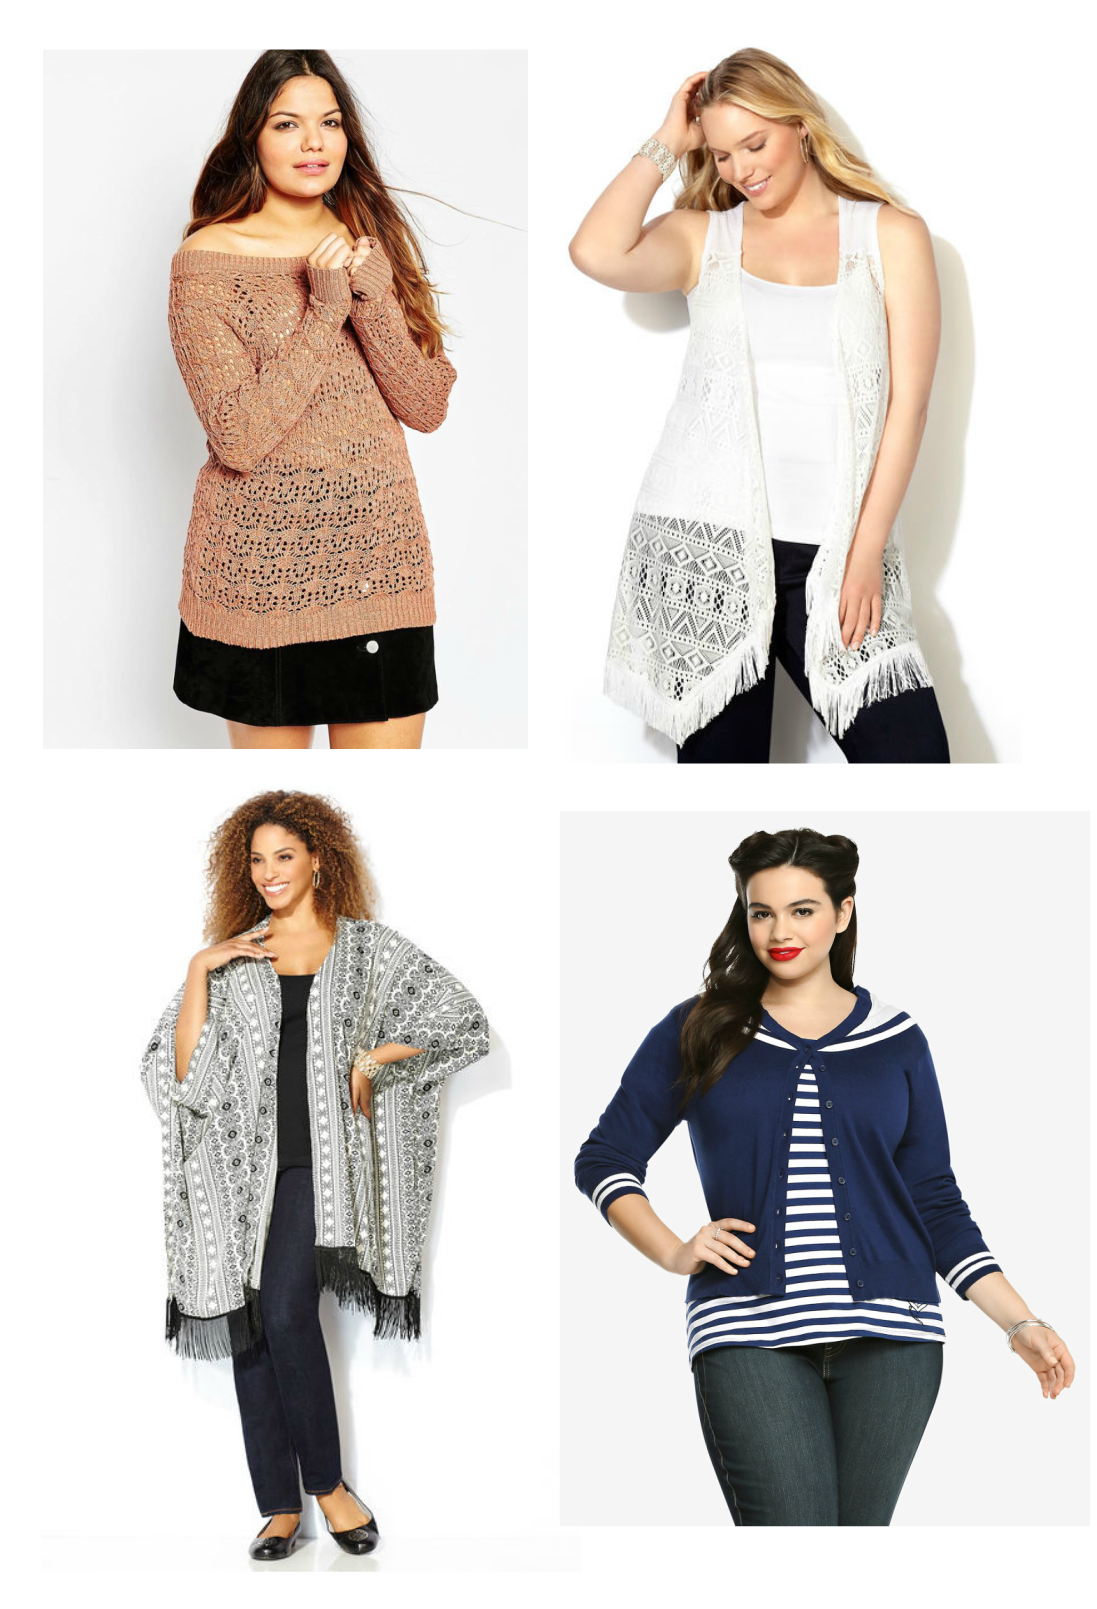 Cardigans, Sweaters, Vests…Oh My!